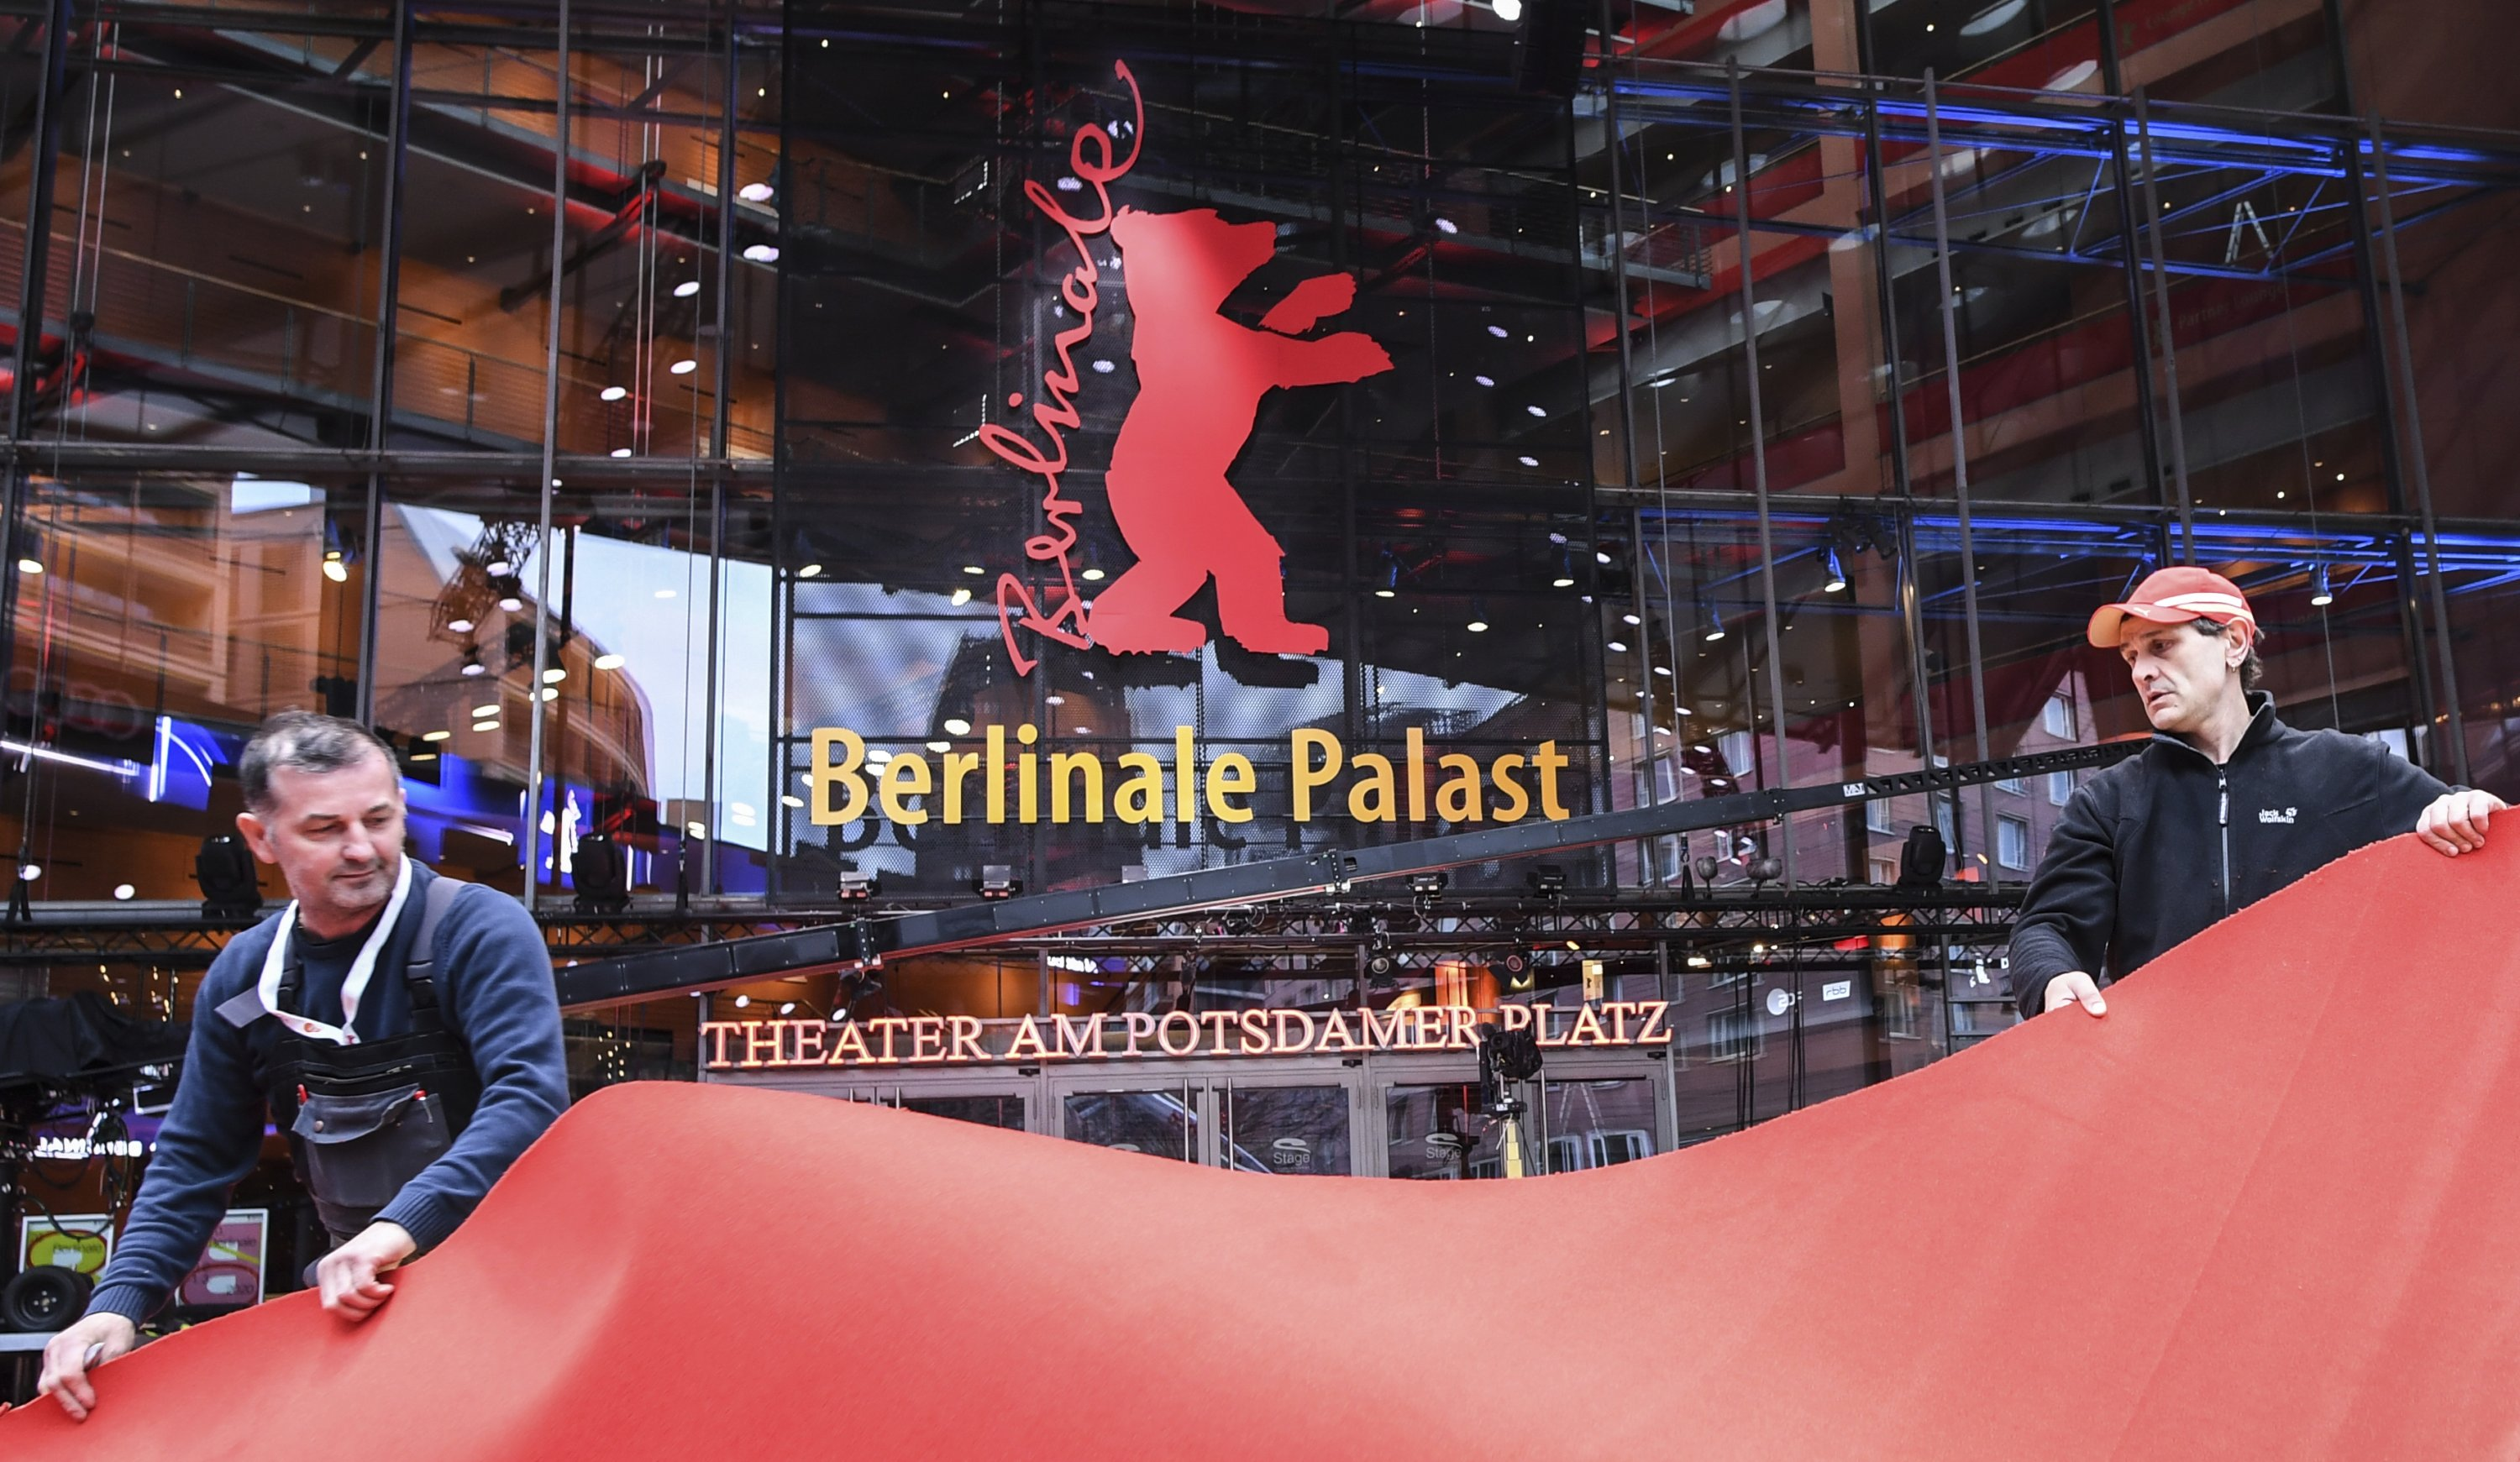 Workers roll out the carpet for the 70th edition of the Berlin International Film Festival, in Berlin, Germany on Feb. 18, 2020. (AP Photo)